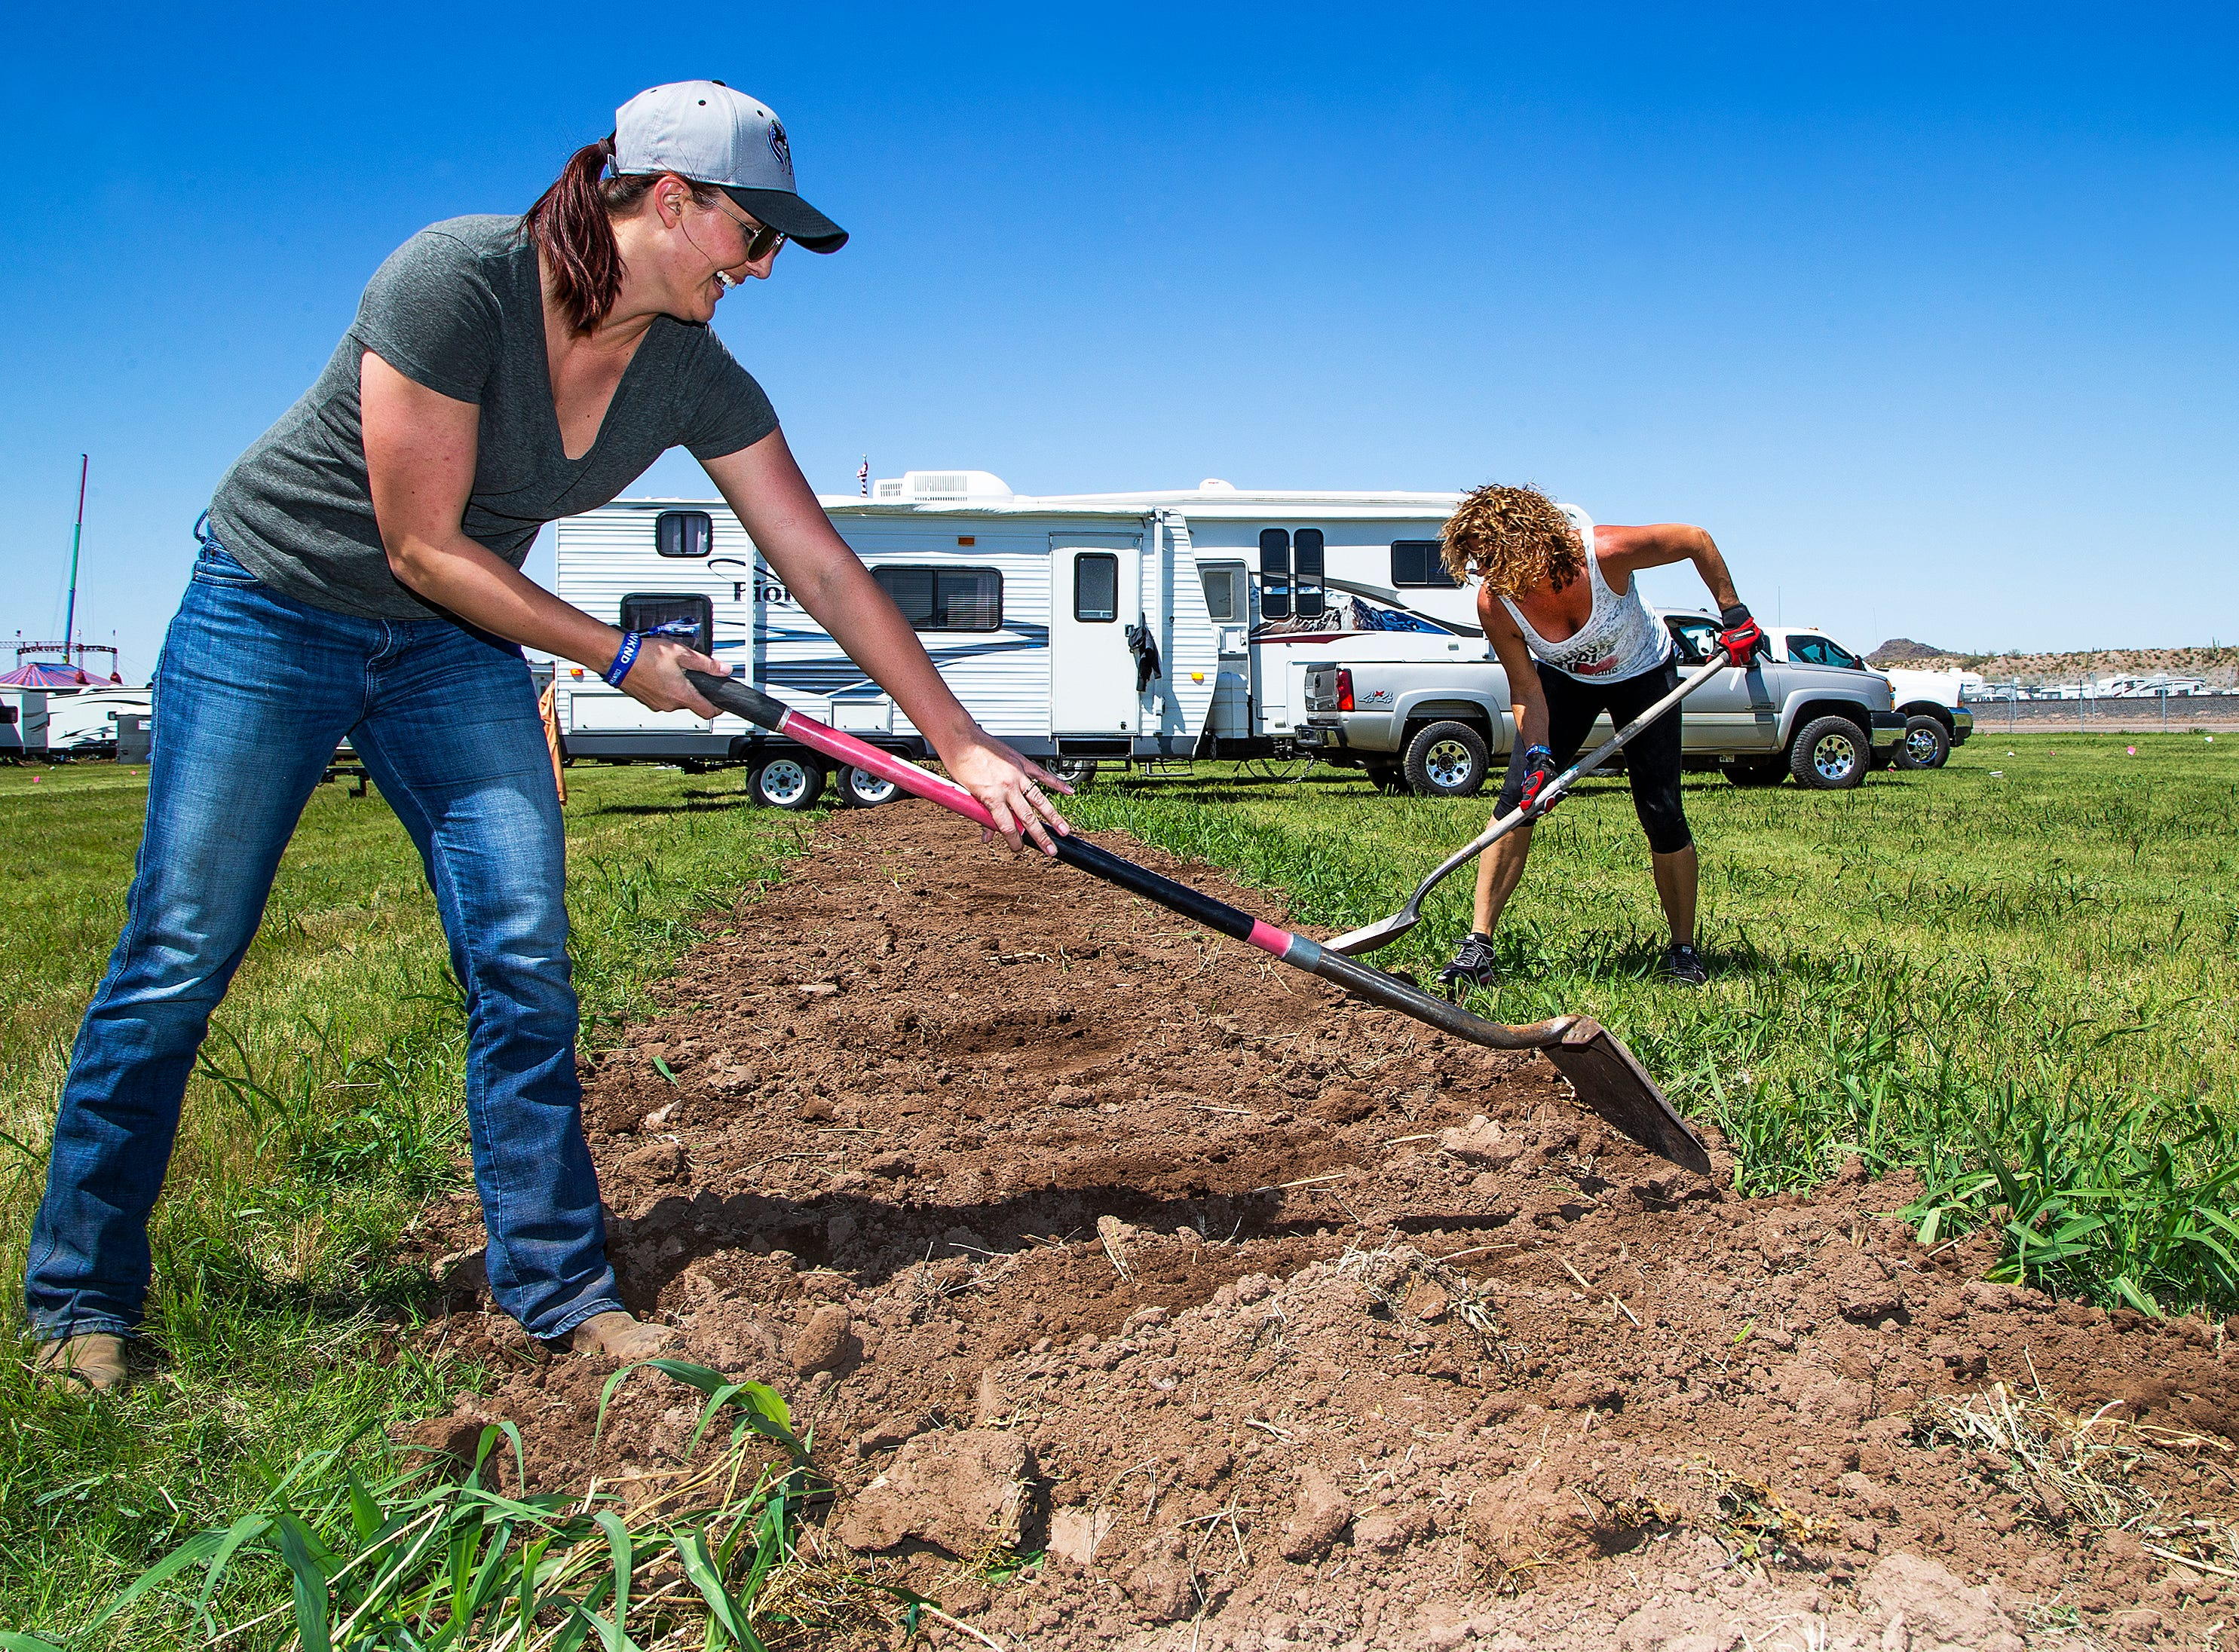 Mackenzie Core (left), 29, of Flagstaff, and Denise O'Brien, 47, of Queen Creek, prepare their camping site at the Country Thunder Arizona 2019 music festival outside Florence April 10, 2019. The two ladies have 49 friends coming to camp. O'Brien has been coming to the festival for 14 years.